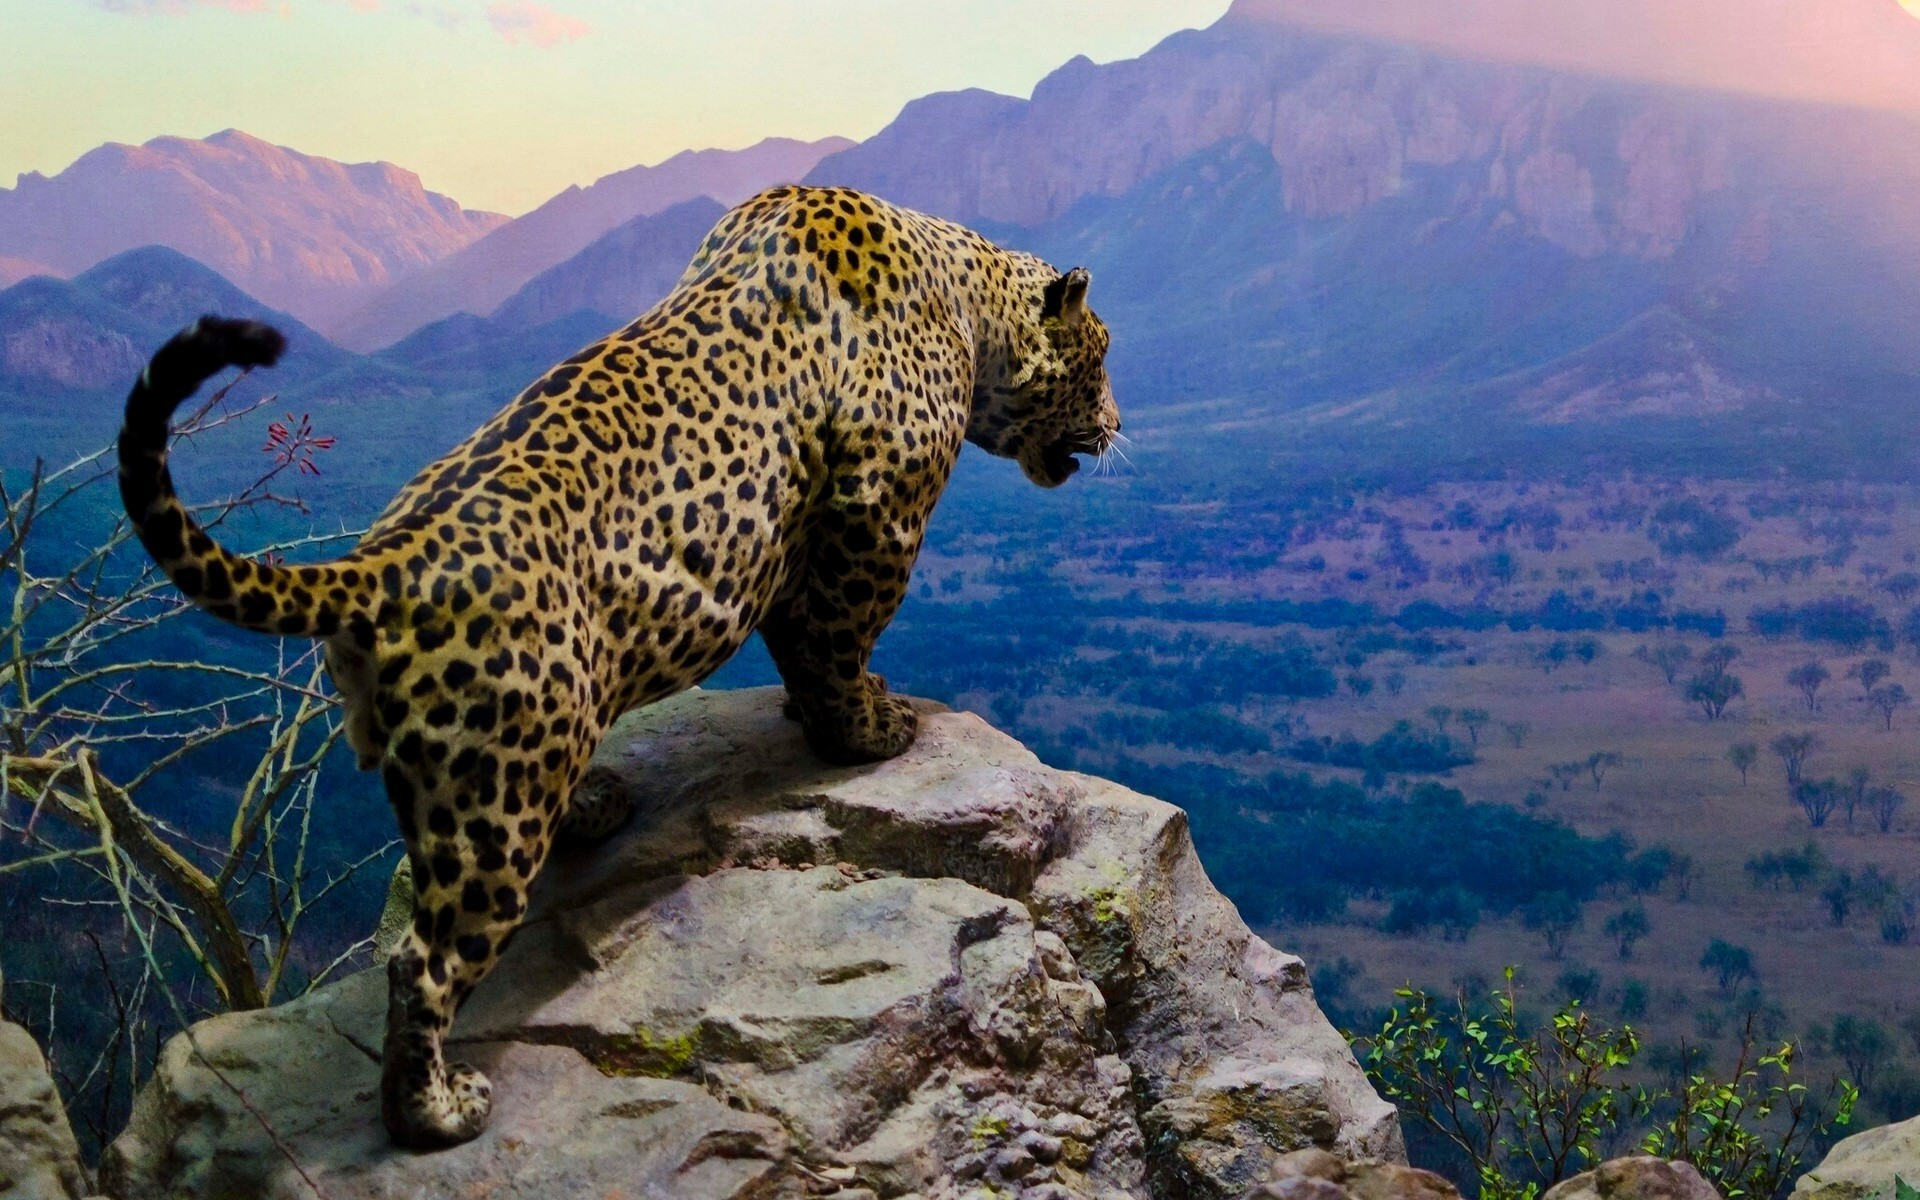 The leopard hunts its prey with stone on a high rock